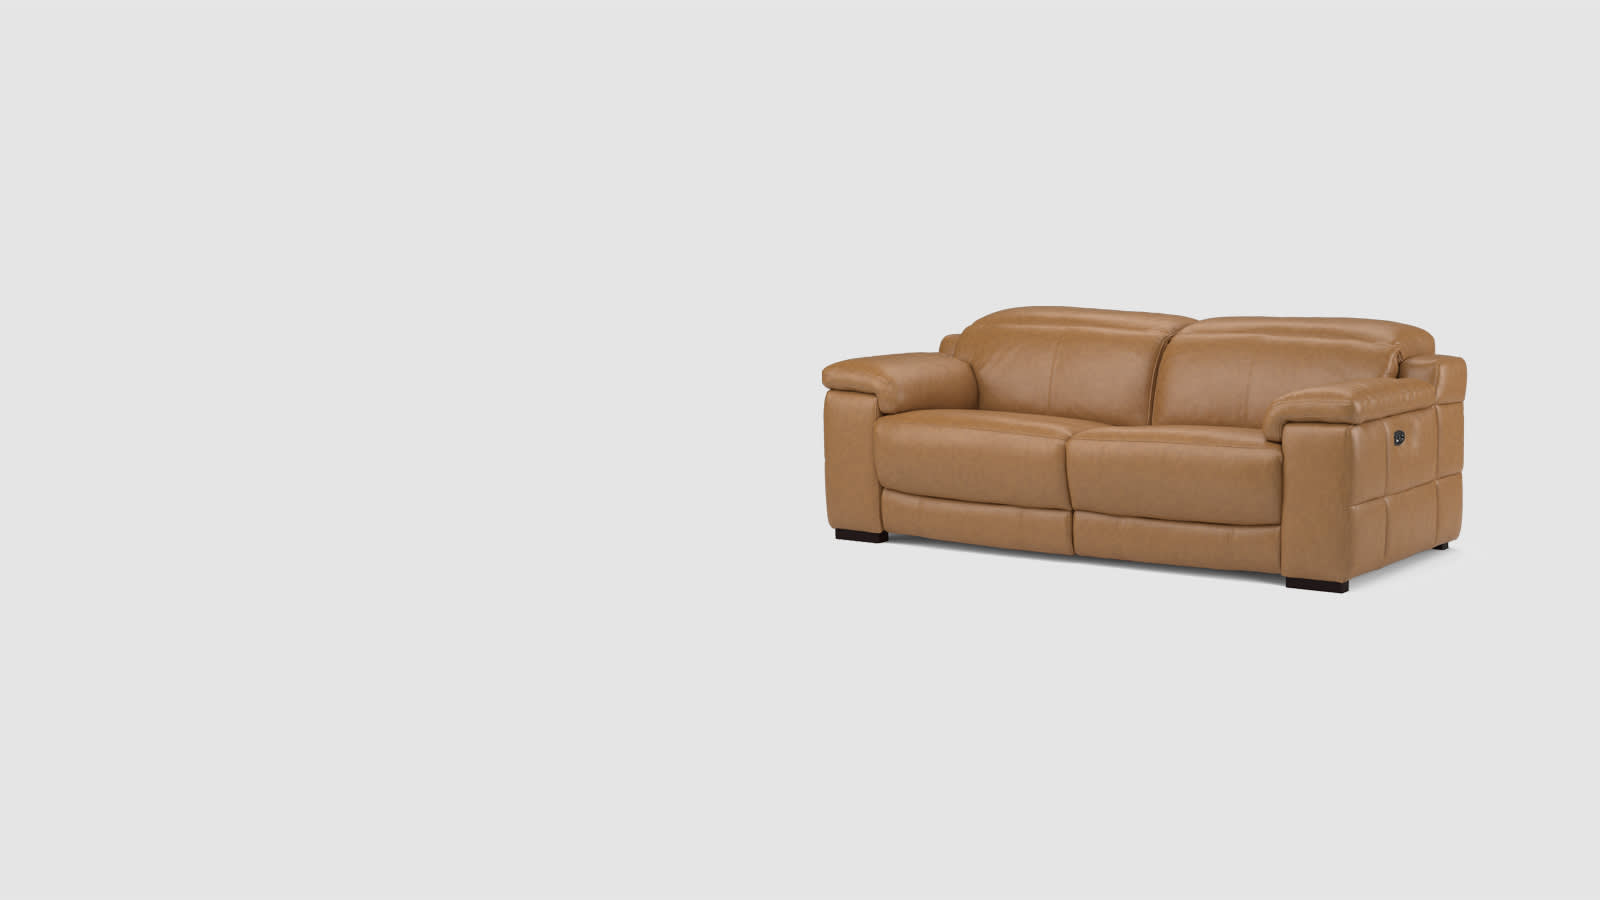 Sofology Laurence leather sofa